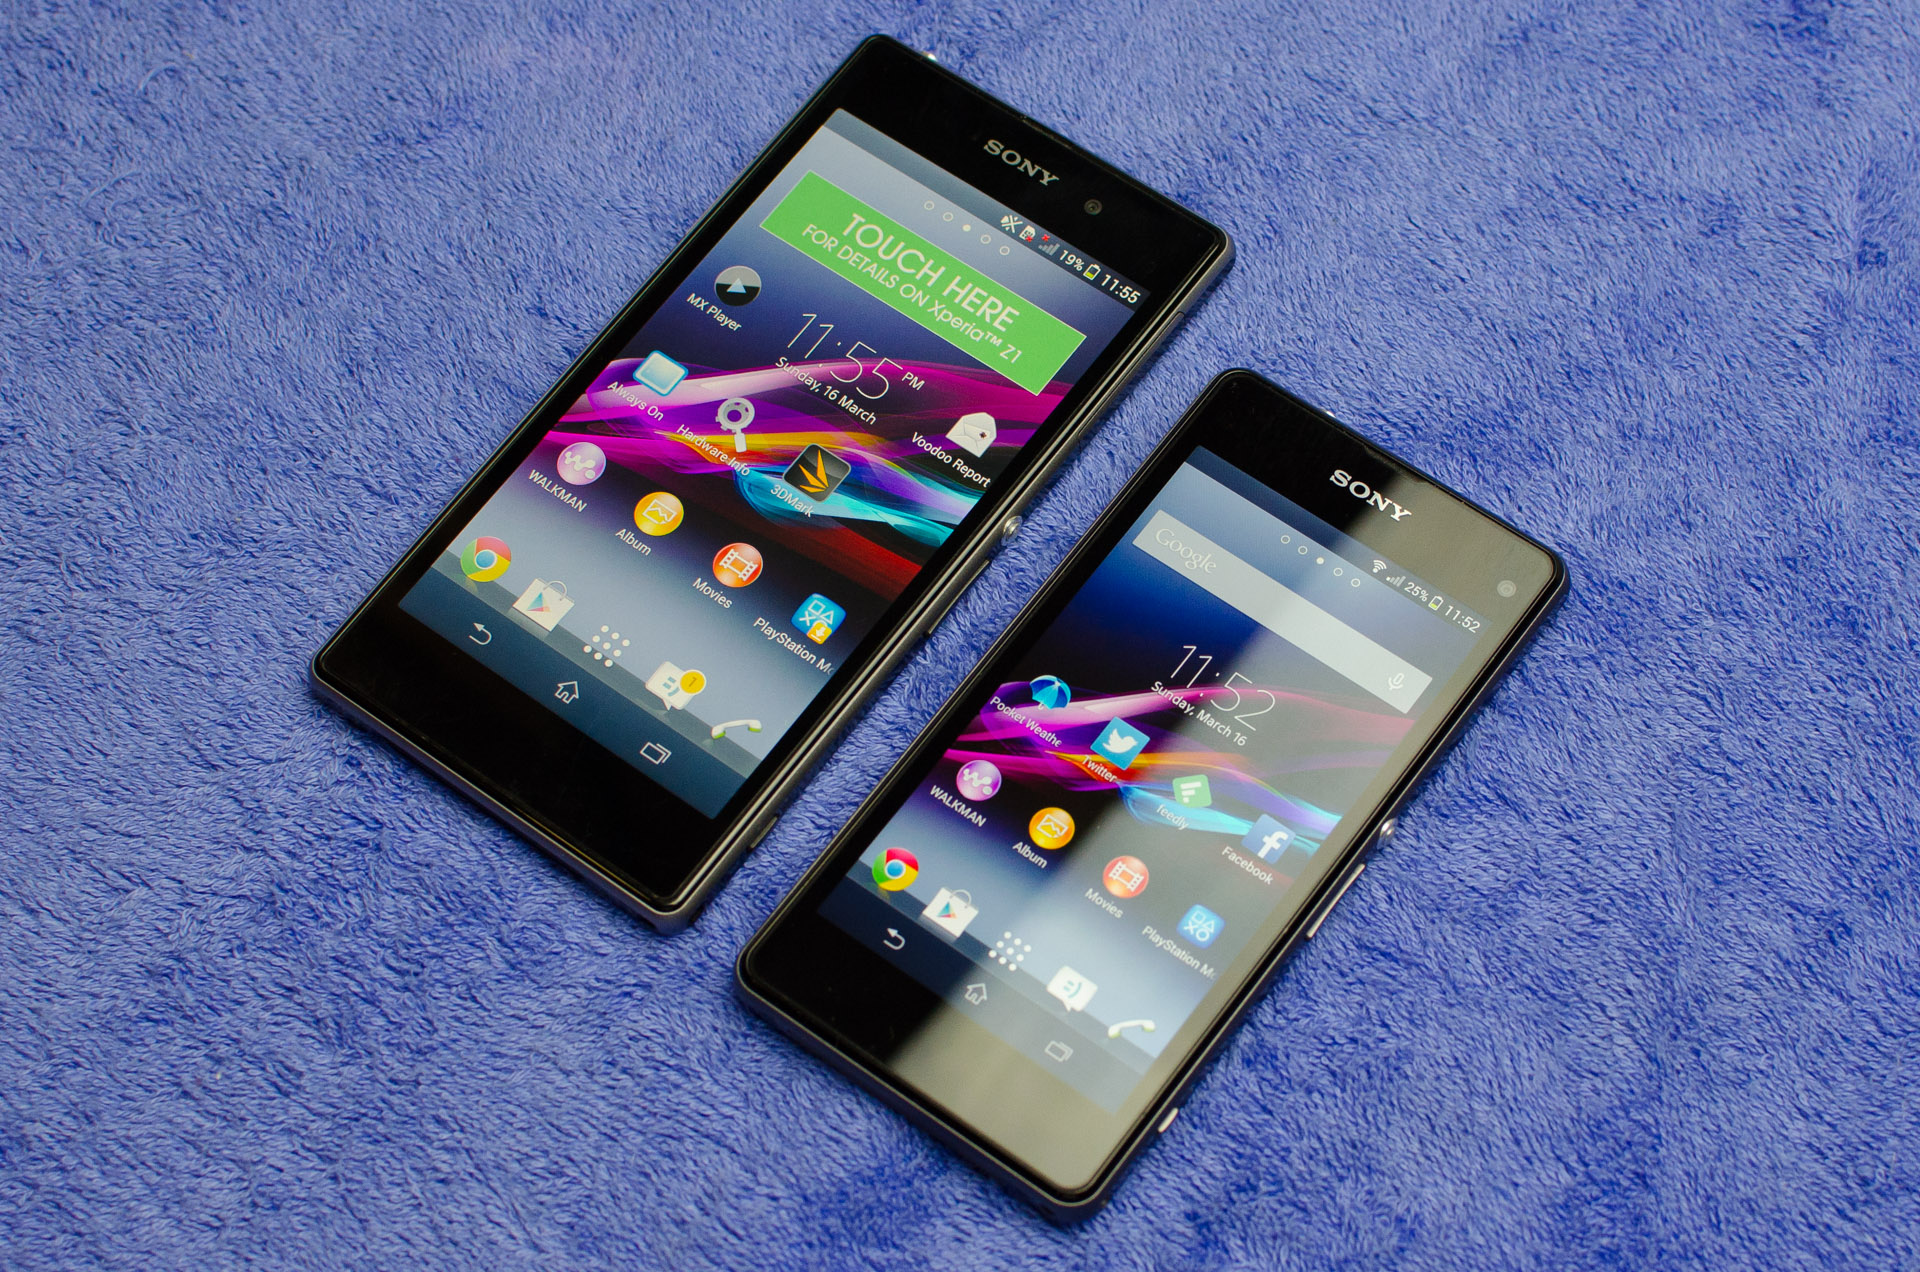 sony xperia z1 compact review photo gallery techspot. Black Bedroom Furniture Sets. Home Design Ideas